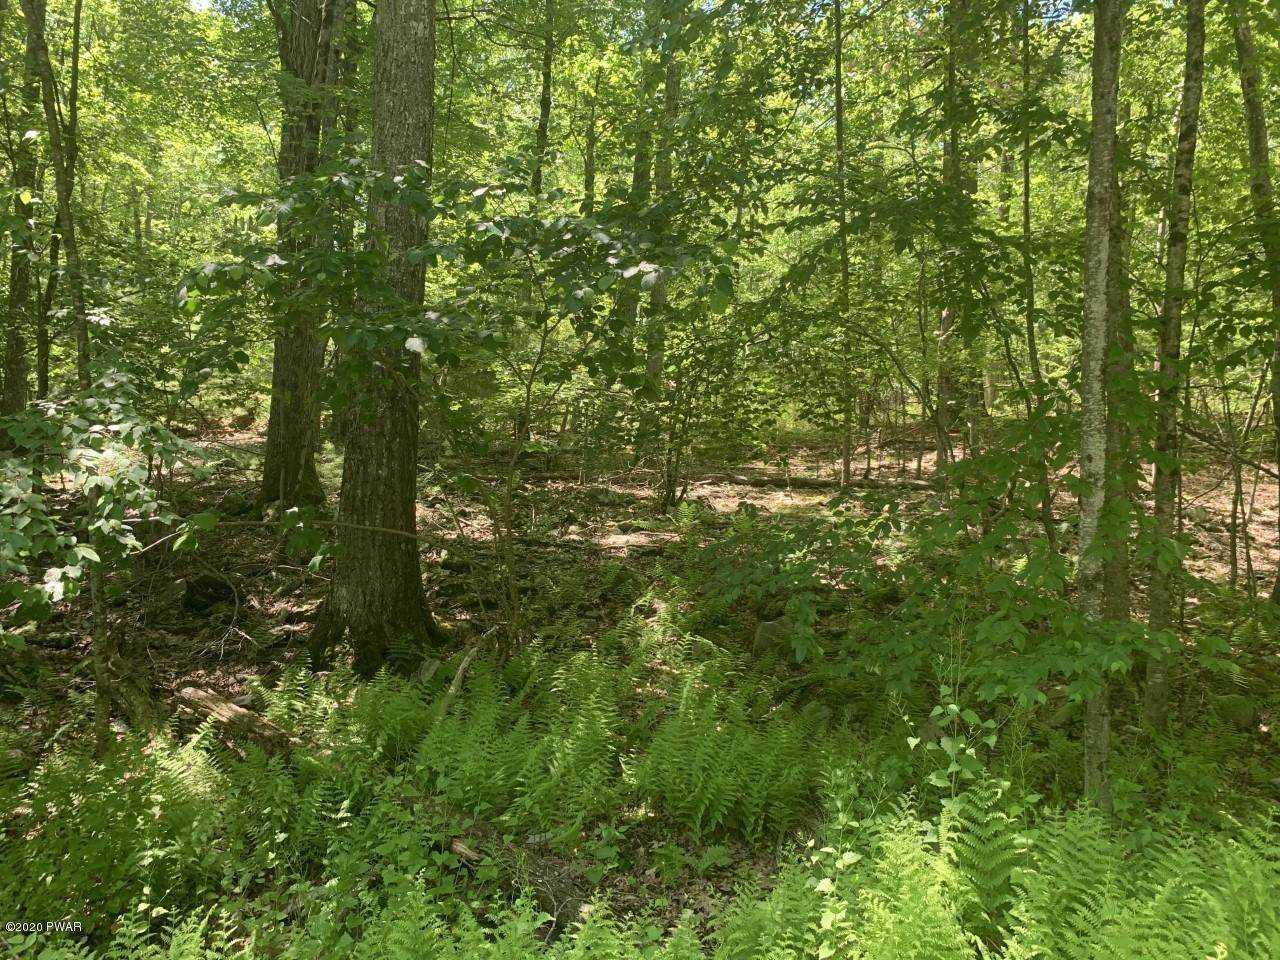 Land for Sale at Lot 92 Sec 2 Block 92 Dingmans Ferry, Pennsylvania 18328 United States